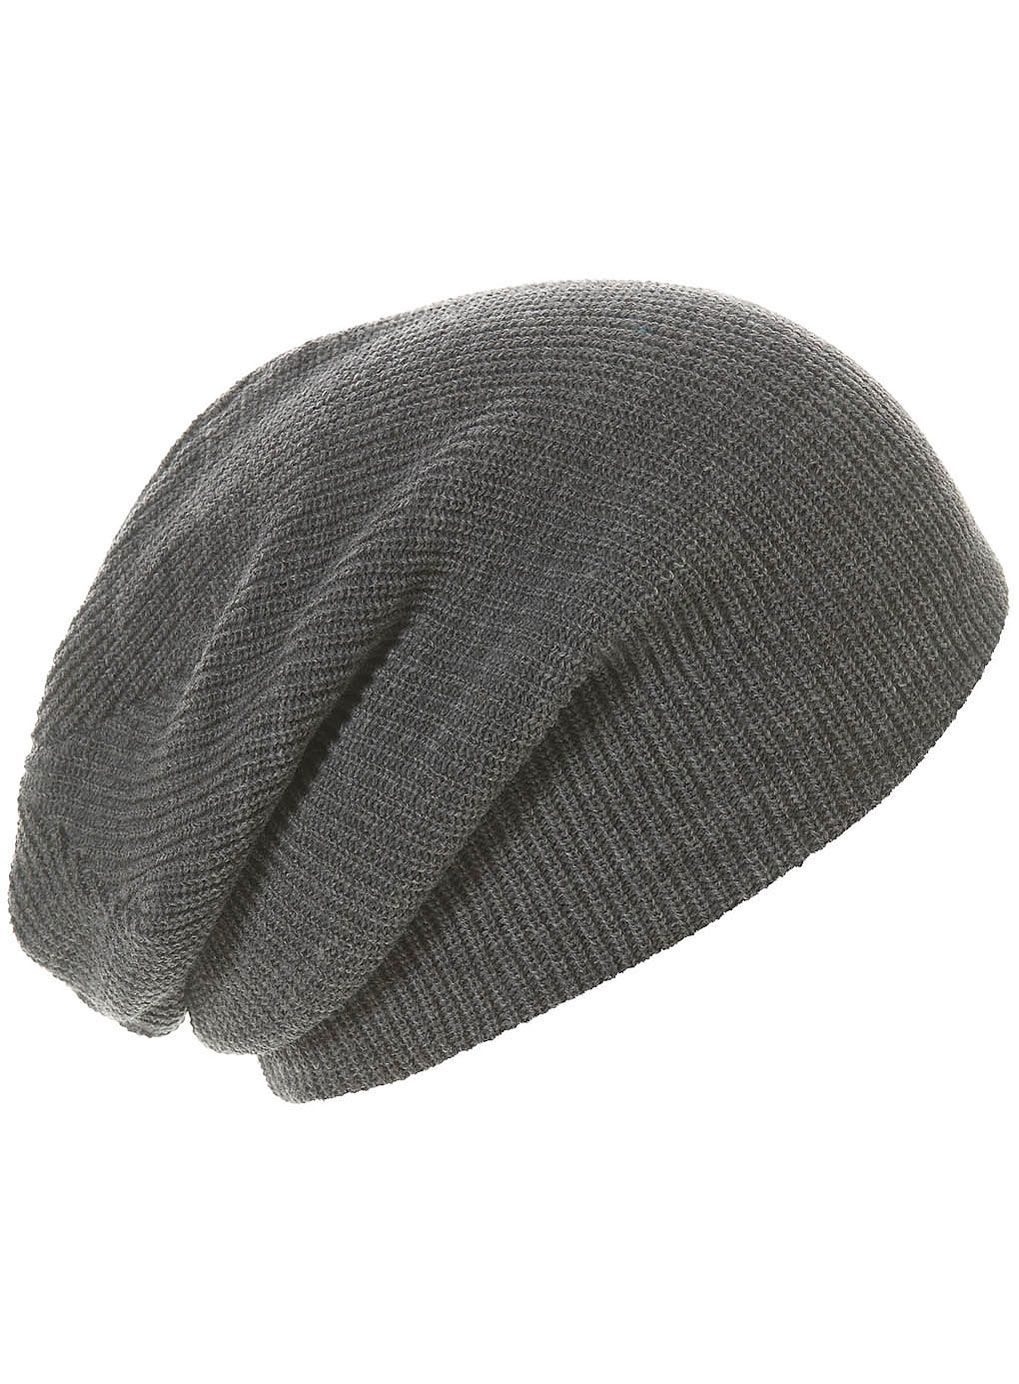 ffb1004be6a GREY MID SIZE BEANIE HAT Topman